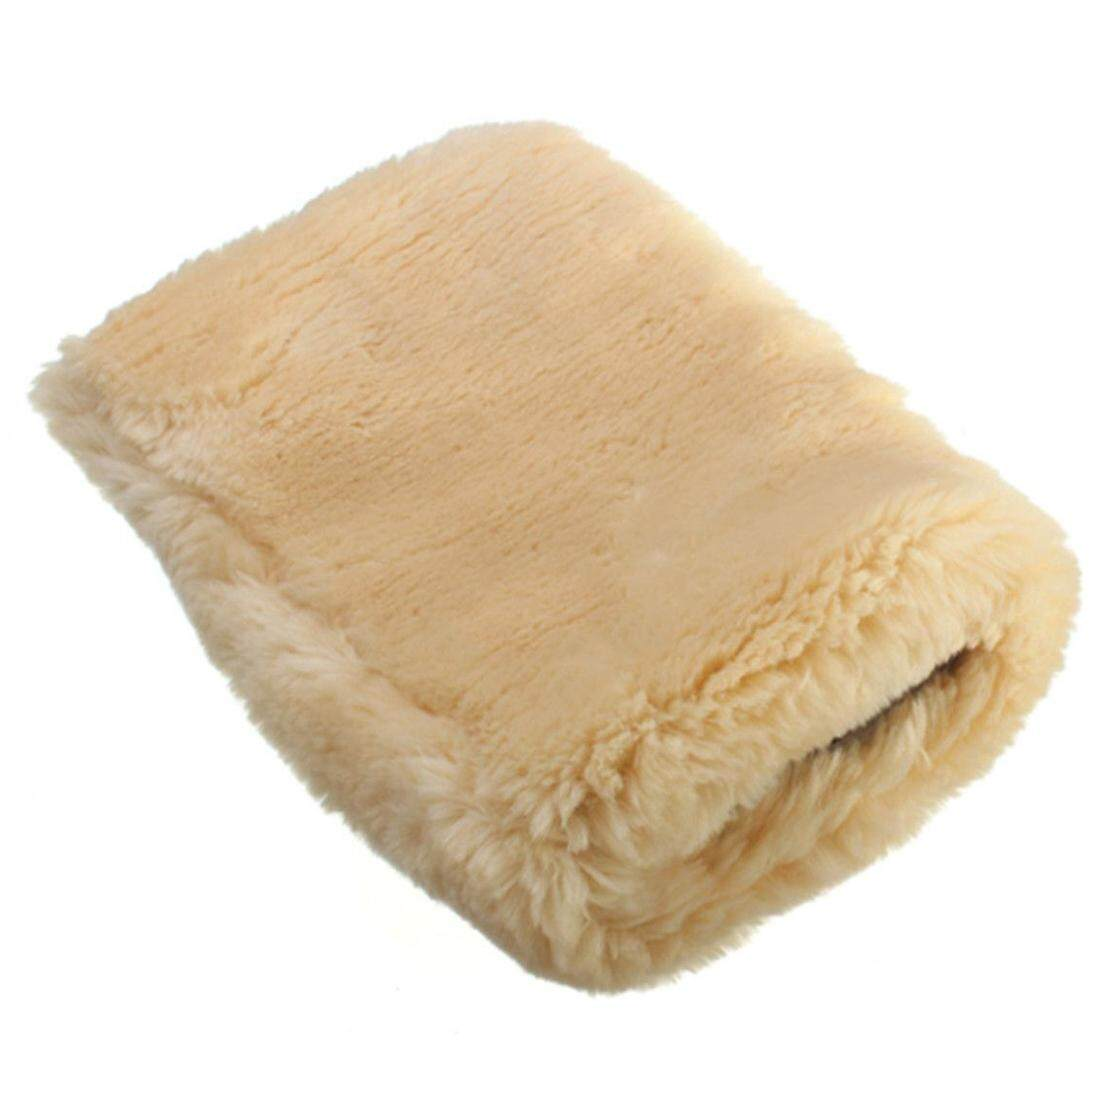 Lambswool Sheepskin Polishing Mitts Buffing Car Cleaning Wash Glove By Yomichew.